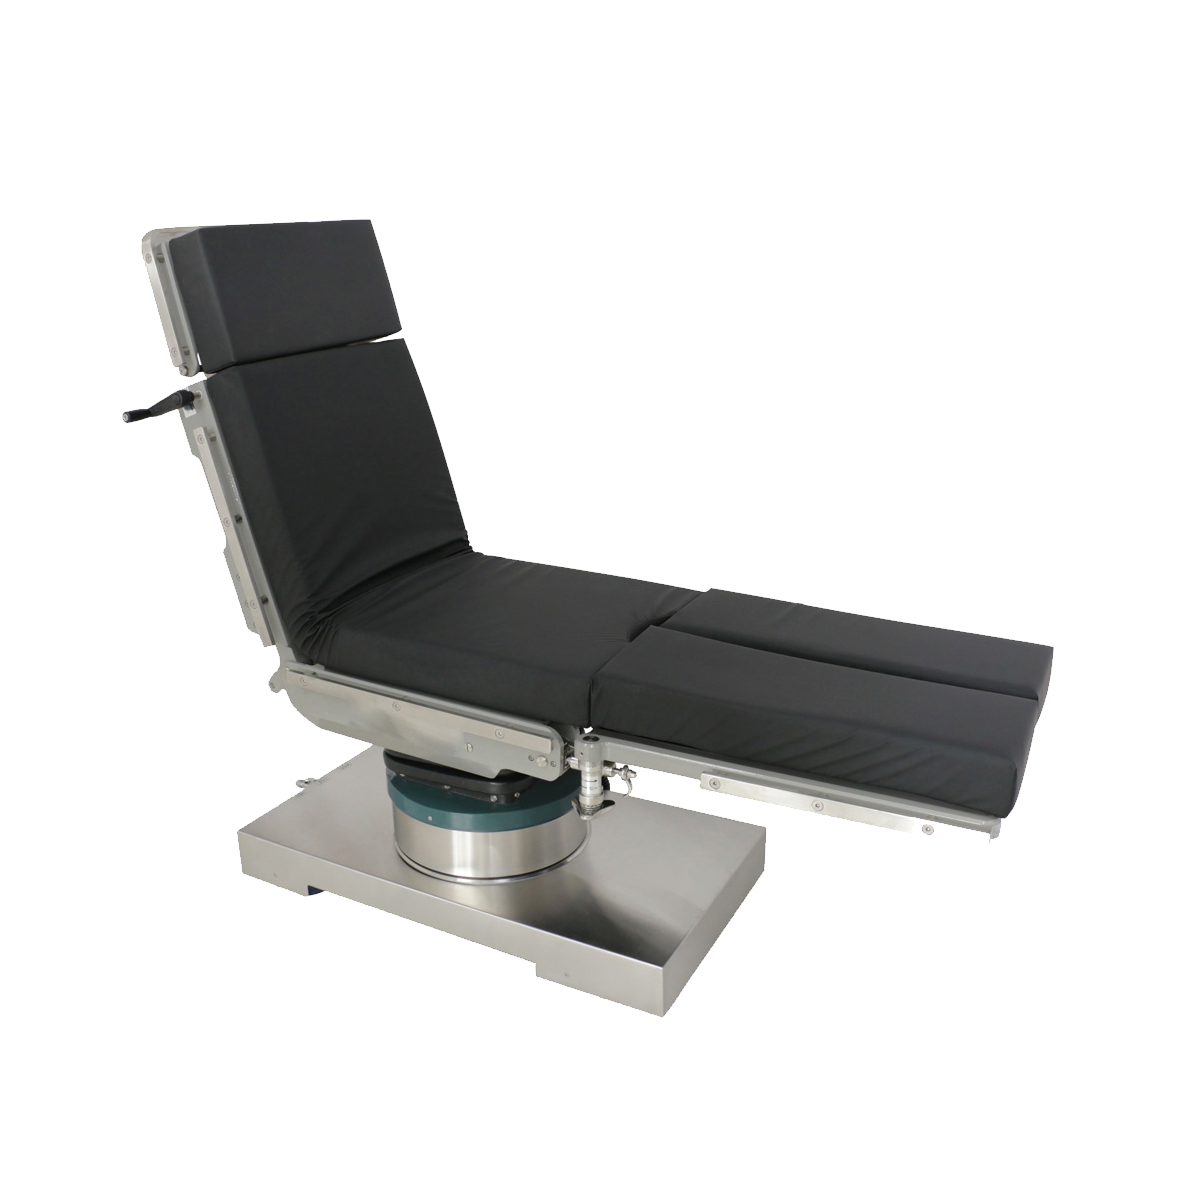 Urology examination tables